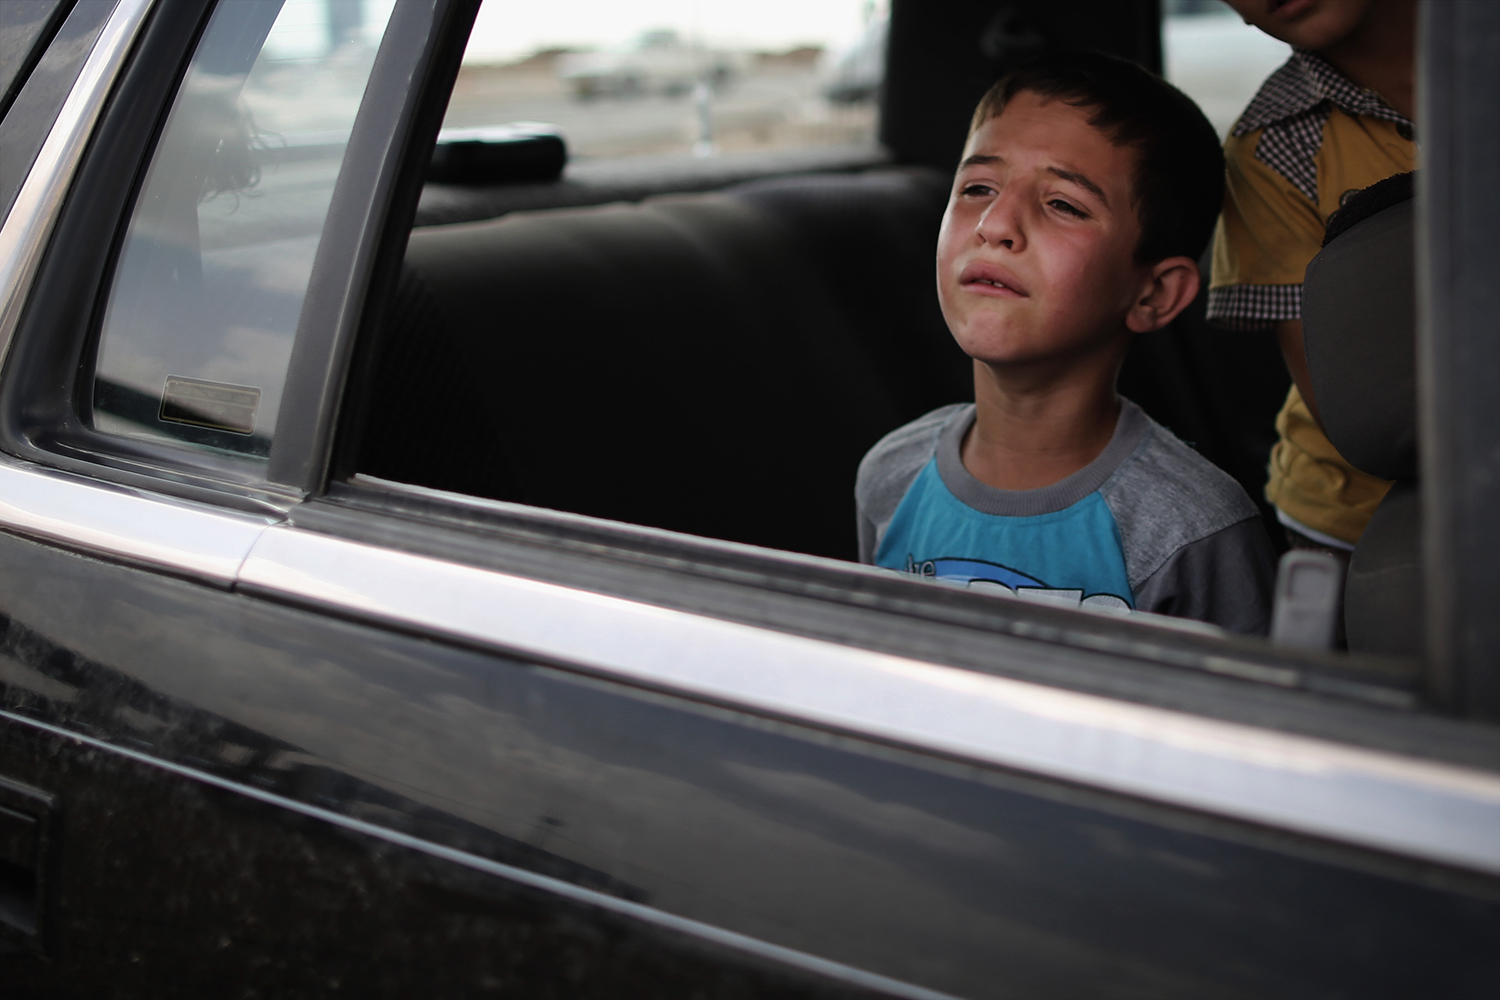 on June 13, 2014. A boy cries  while waiting in a car at a Kurdish checkpoint in Kalak, Iraq.